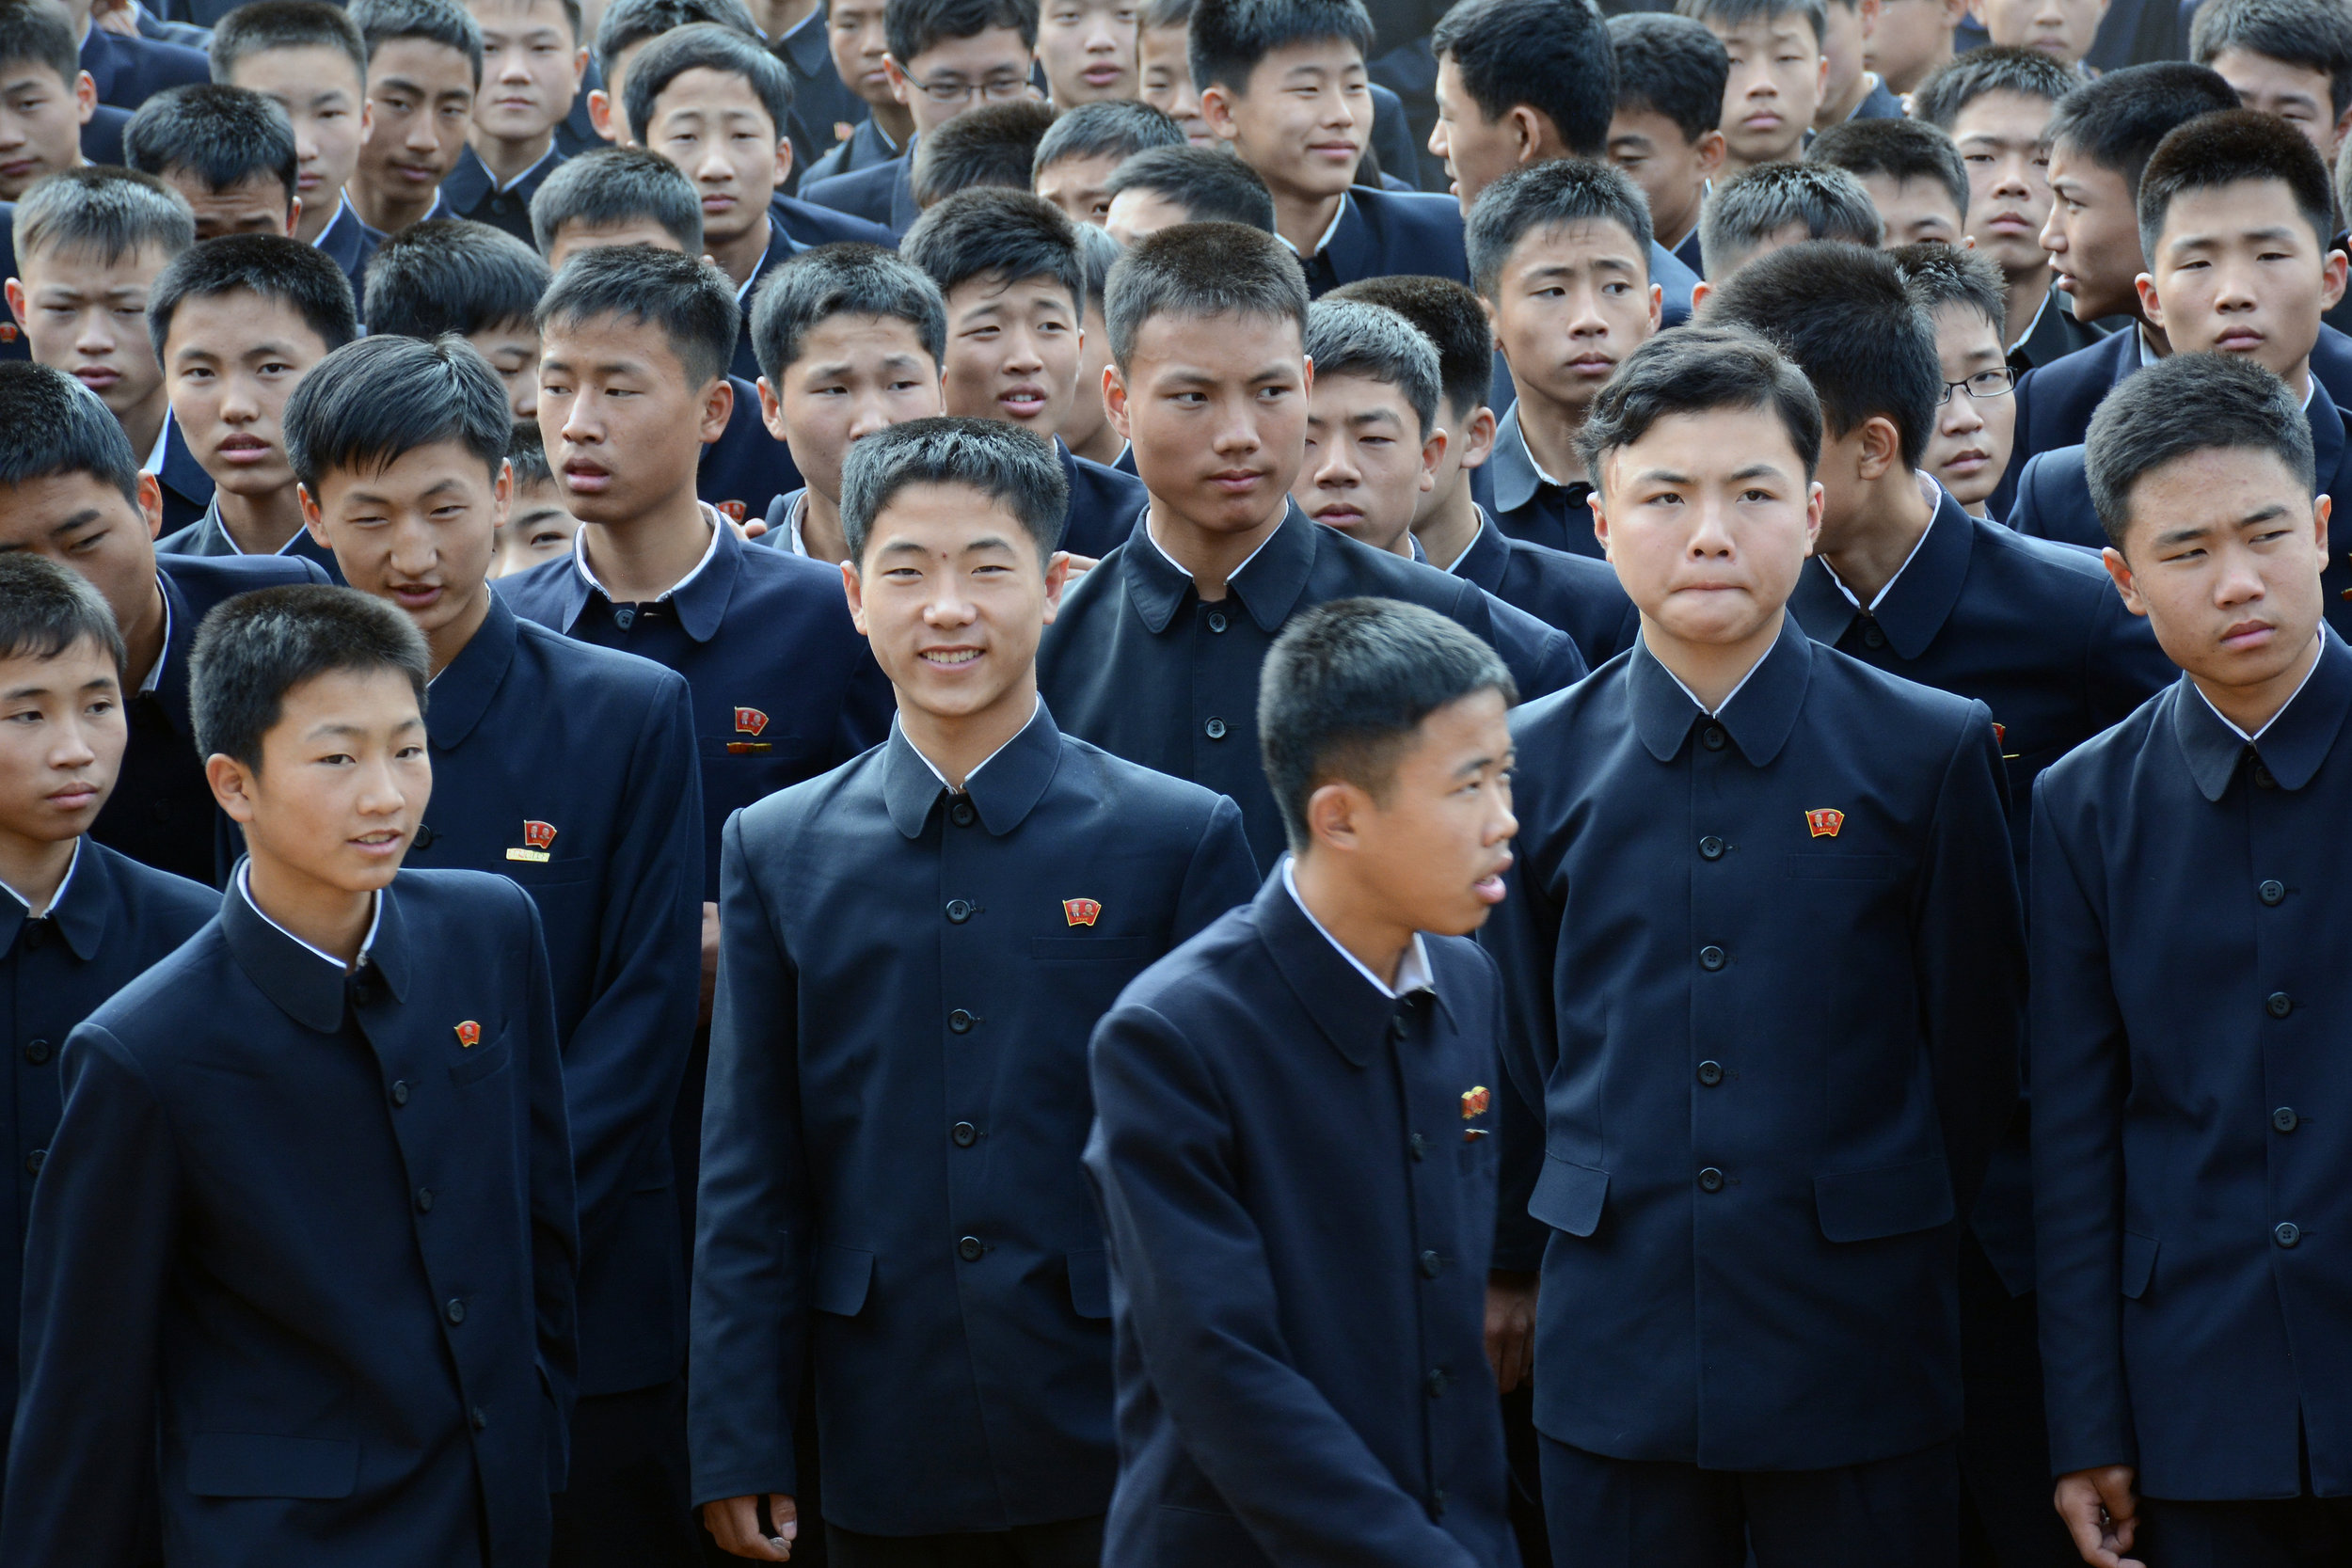 Middle school students gather outside for their daily calisthenics routine in Pyongsong city, North Korea.